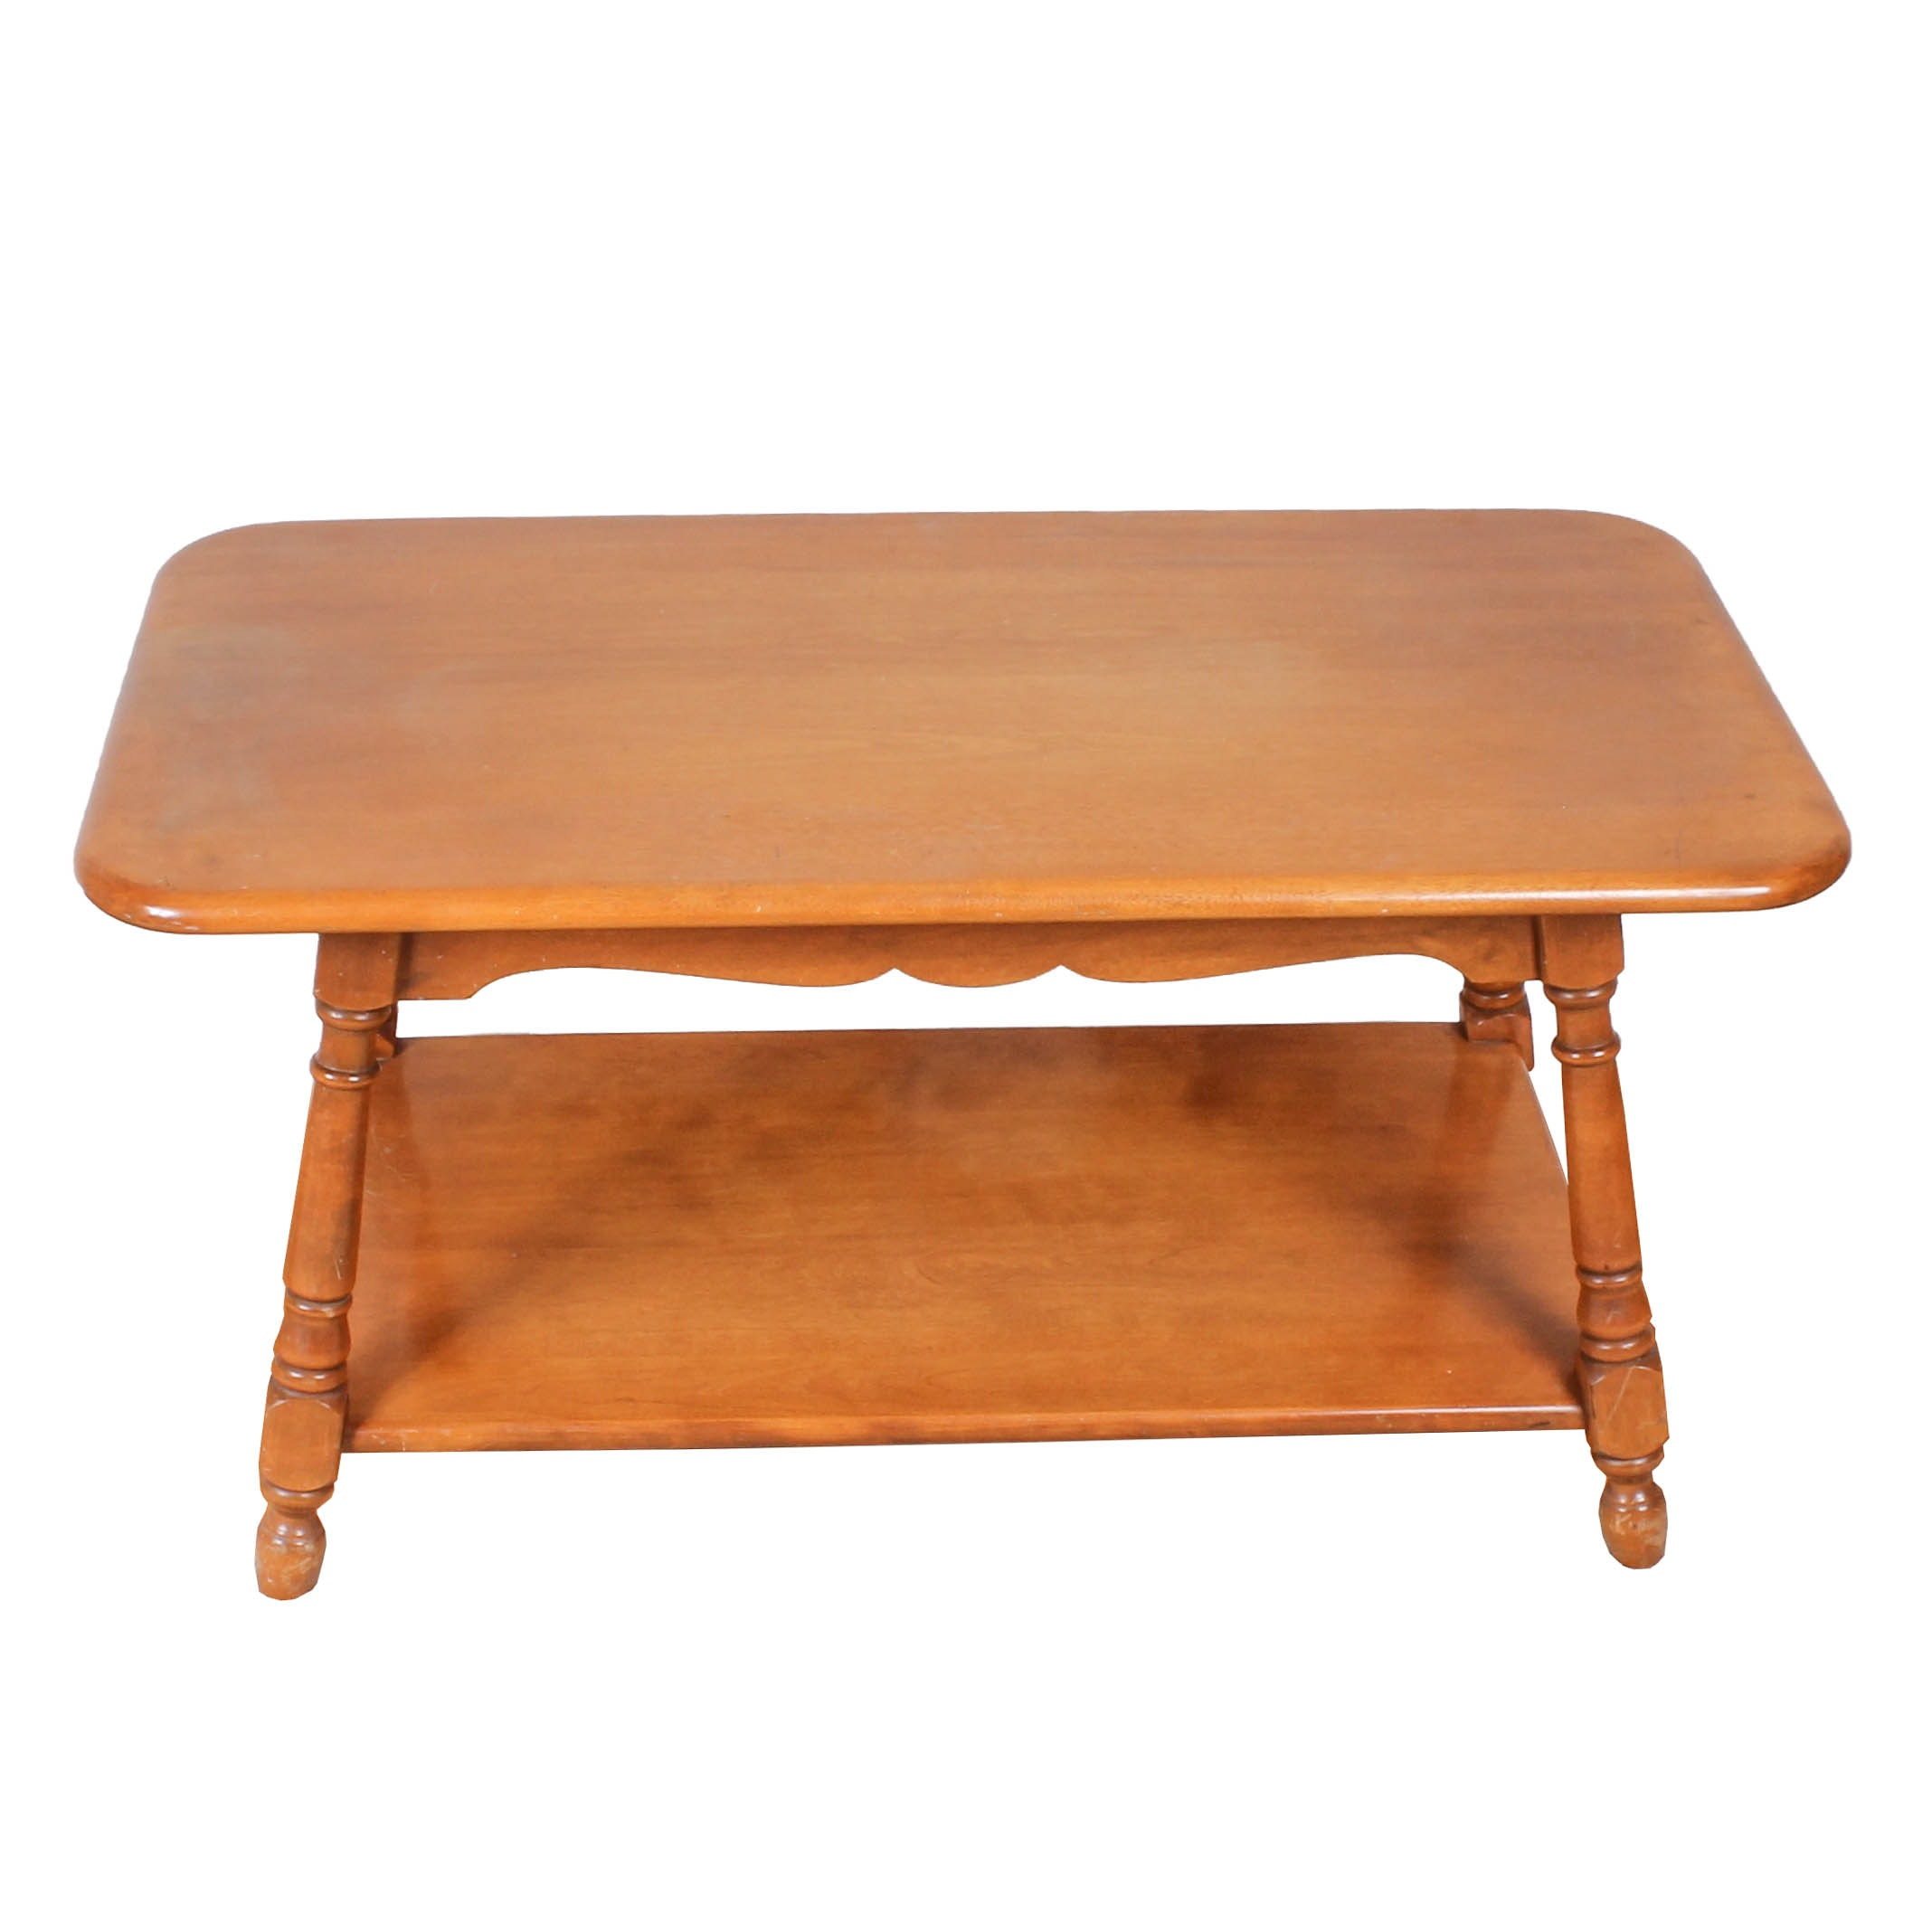 Vintage Heywood Wakefield Coffee Table